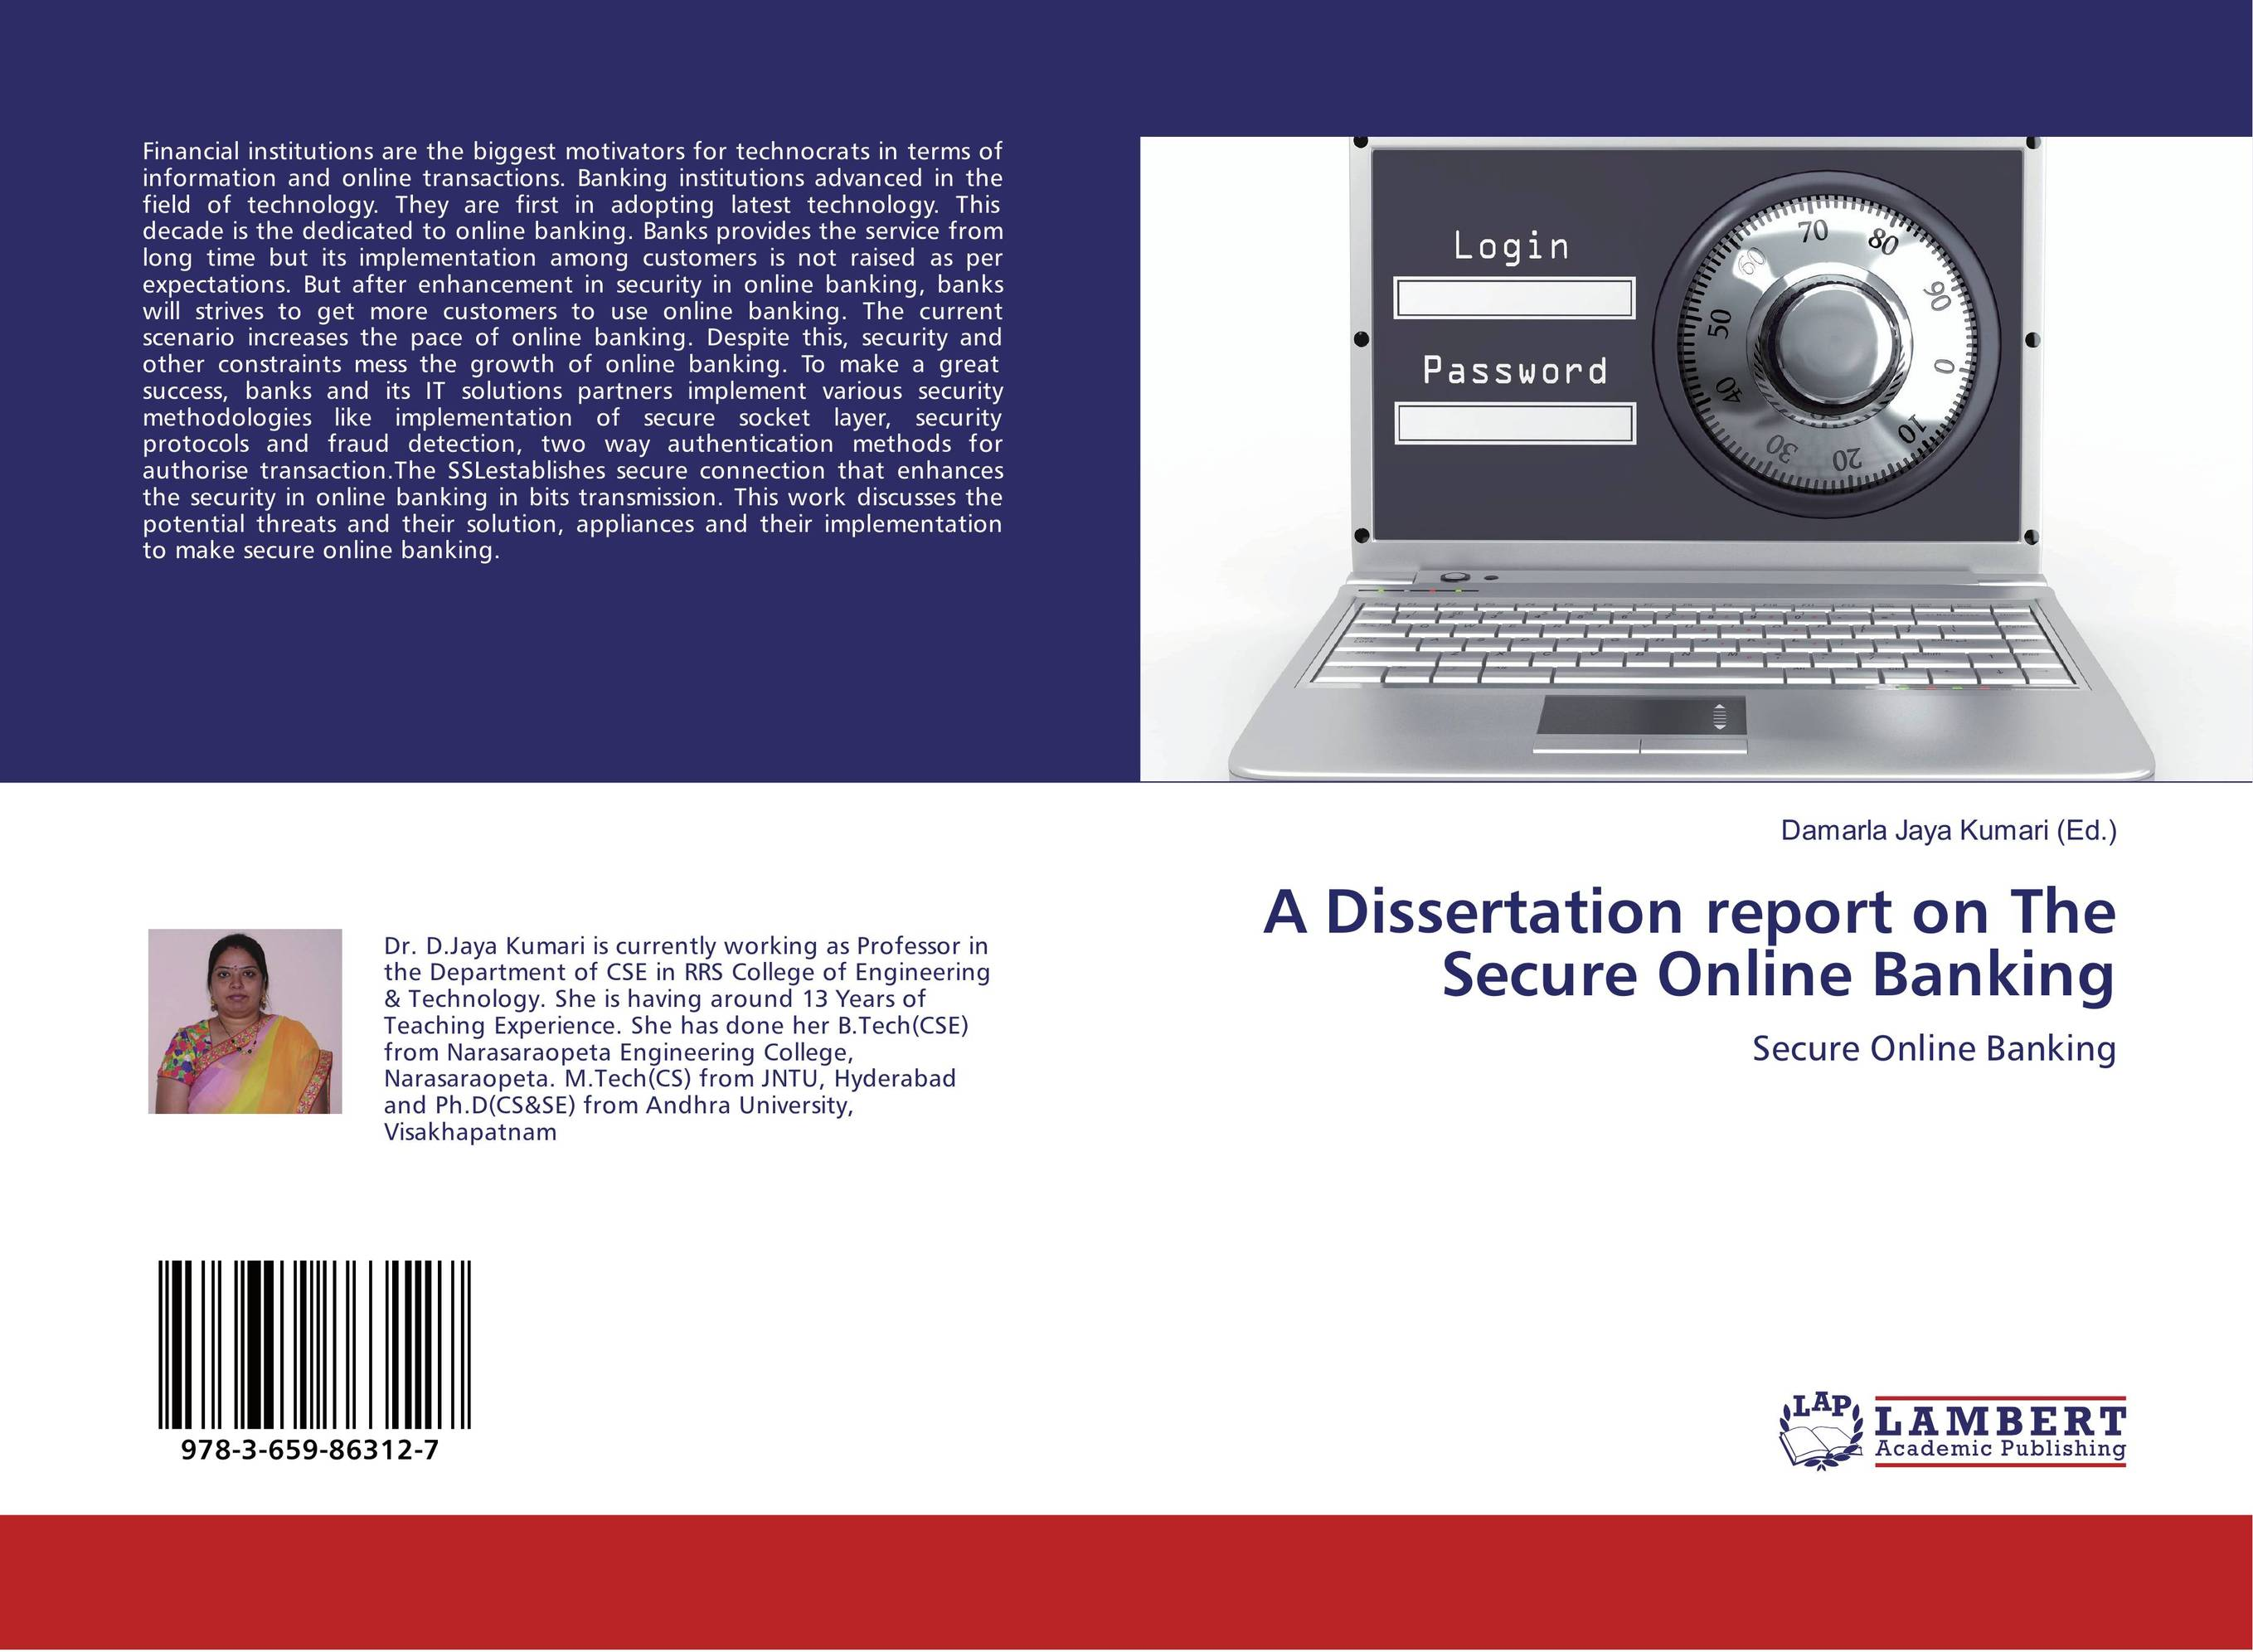 A Dissertation report on The Secure Online Banking